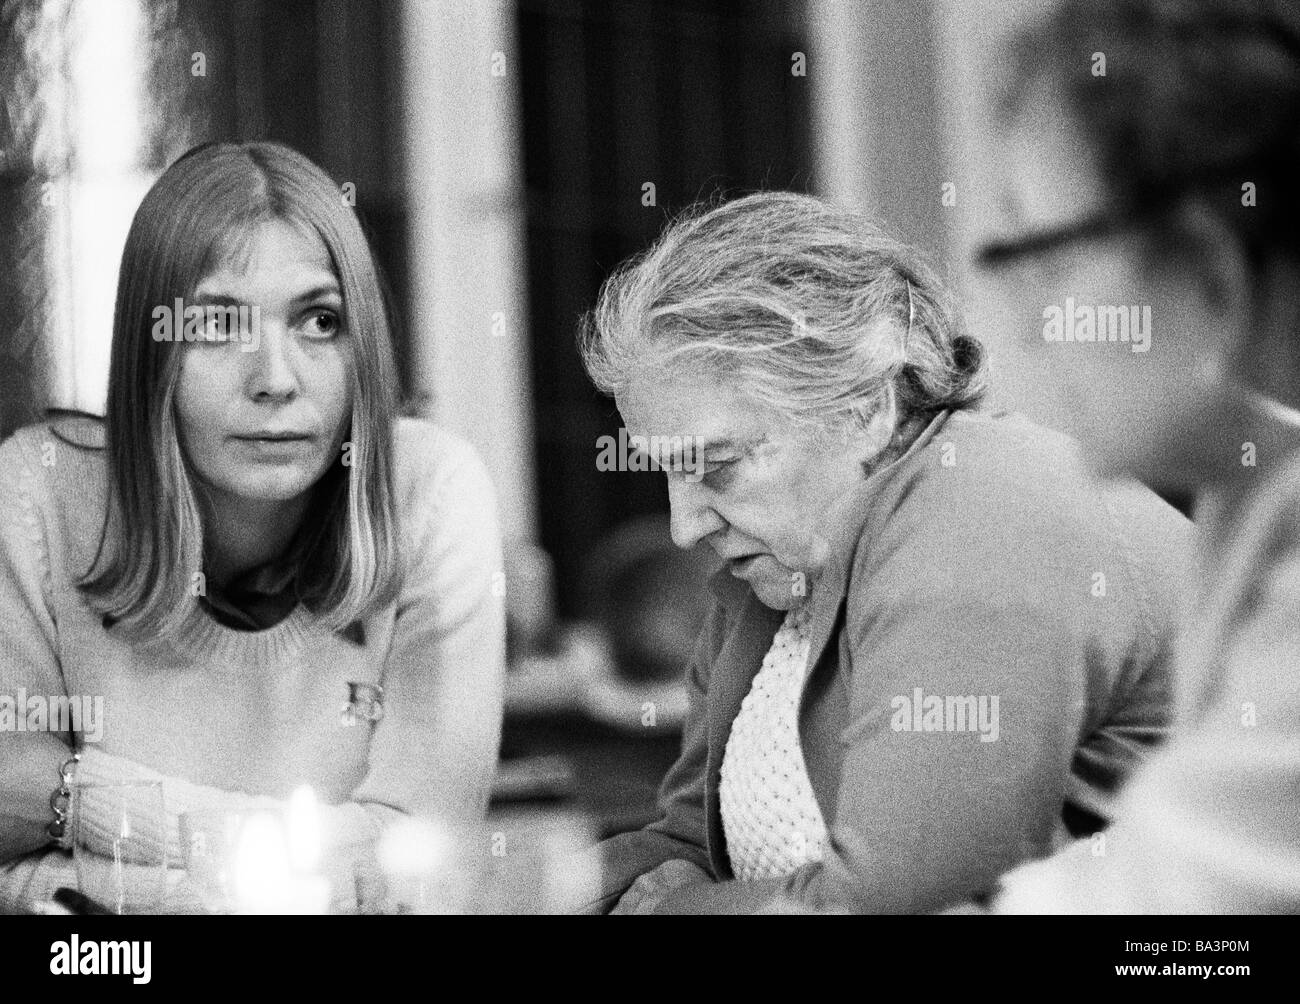 Seventies, black and white photo, people, young woman and older woman sit together, sadness, depressions, aged 25 - Stock Image